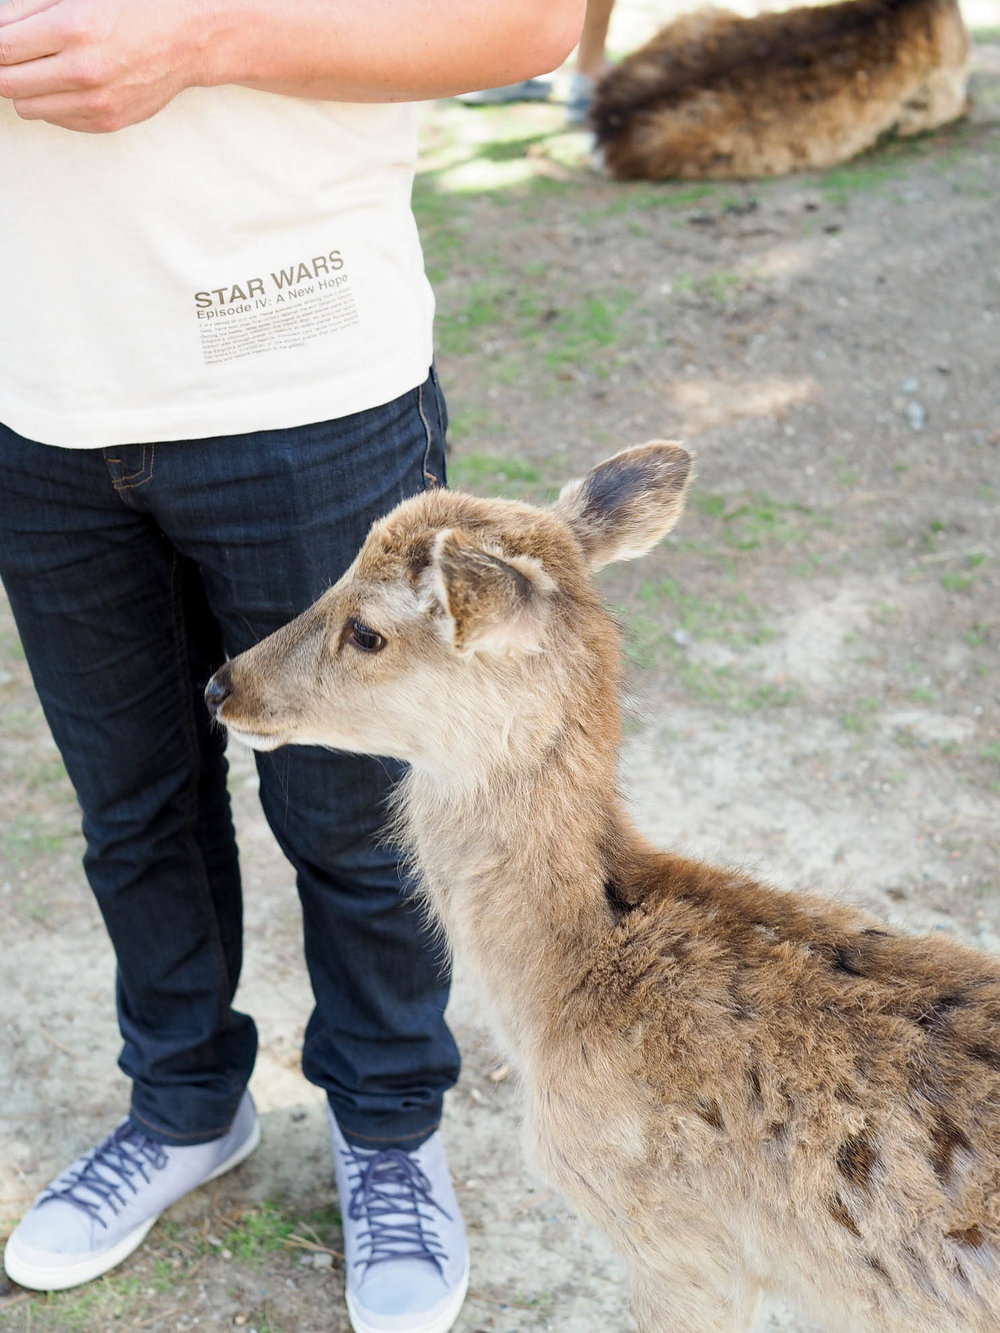 Friendly, free-roaming deer at Nara Park in Nara, Japan.